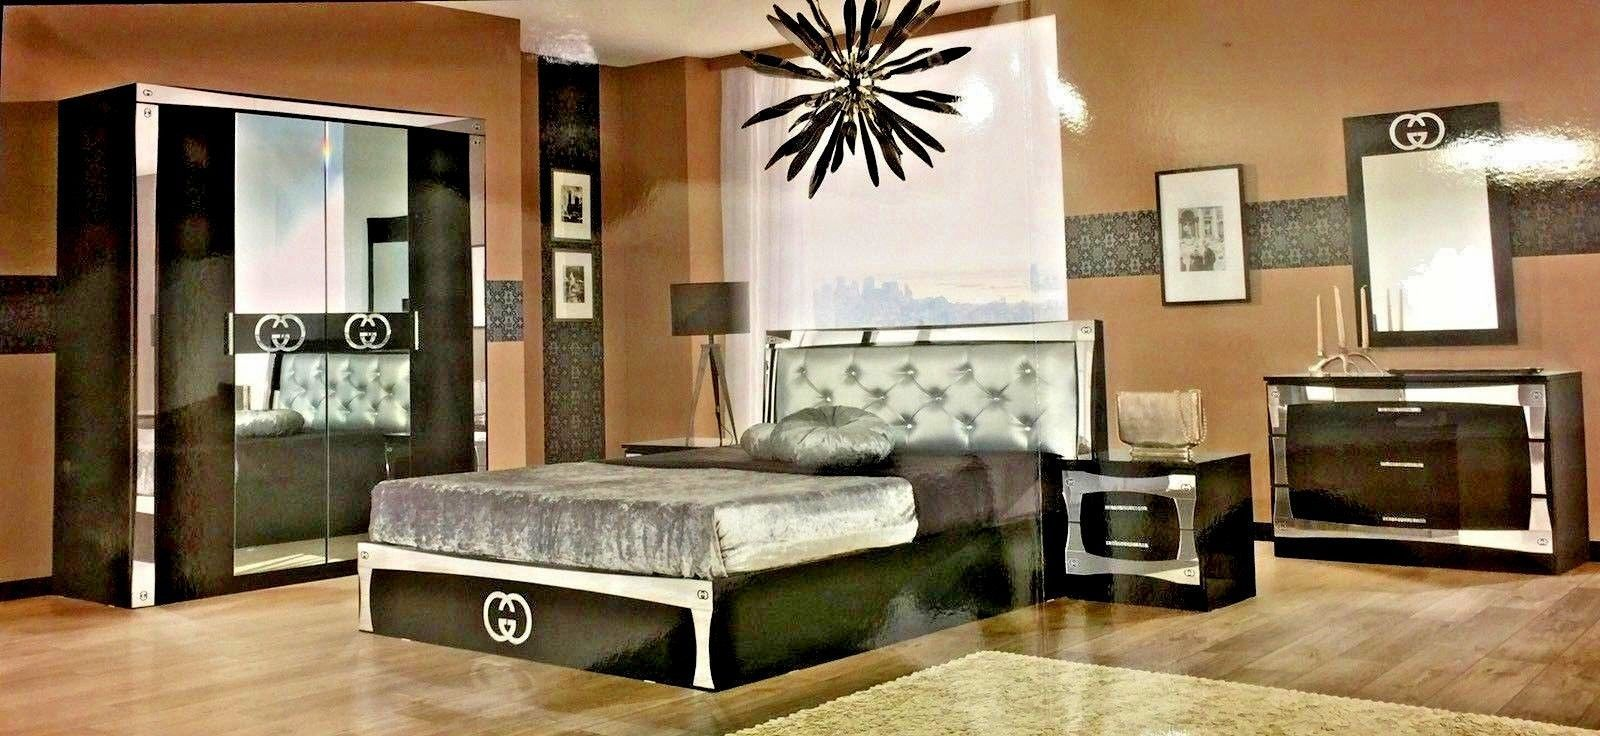 Luxurious Gucci Style Italian 6 Items Bedroom Set Double Or King Size Bed Frame Ebay Luxuryki King Size Bed Frame Luxury Bedroom Sets King Size Bedroom Sets